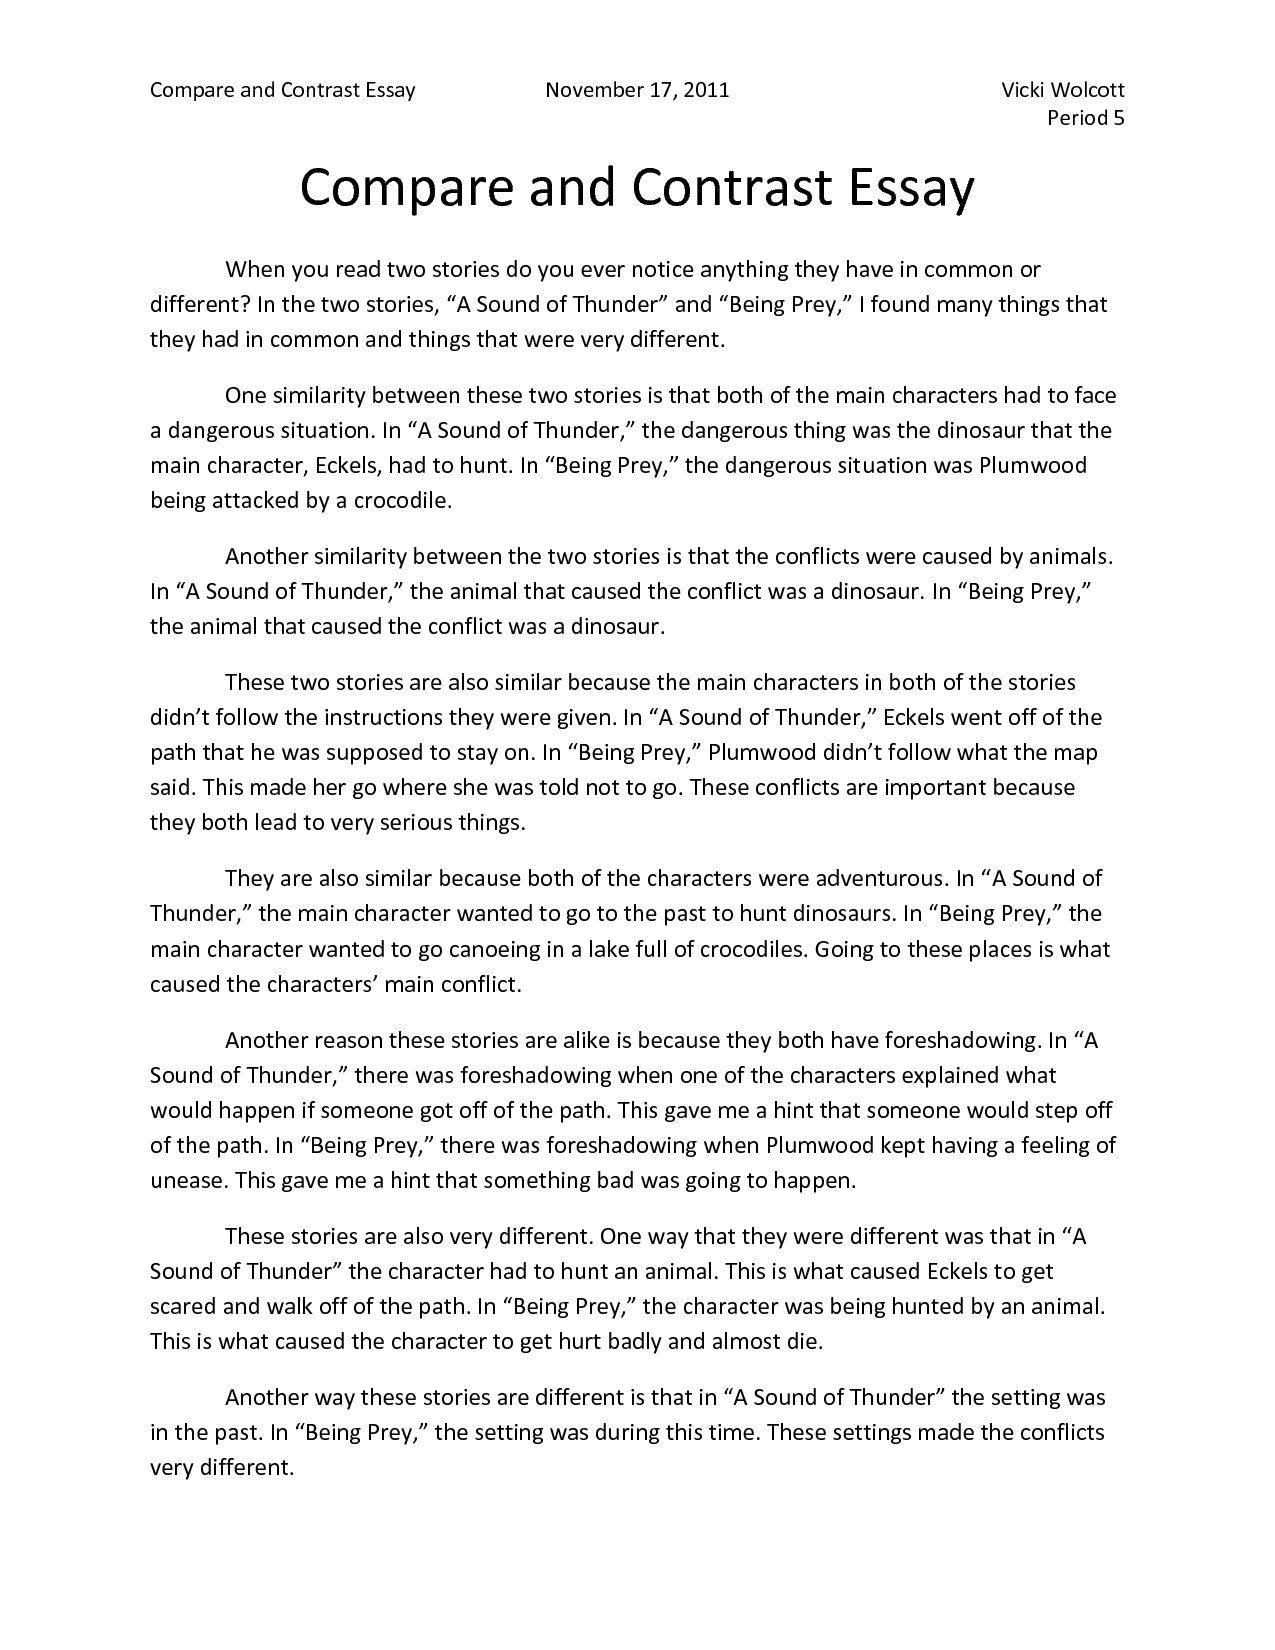 003 Perfect Essays Compare And Contrast Essay Introduction Example How To Write College Striking Examples Level Topics 9th Grade For Students Full